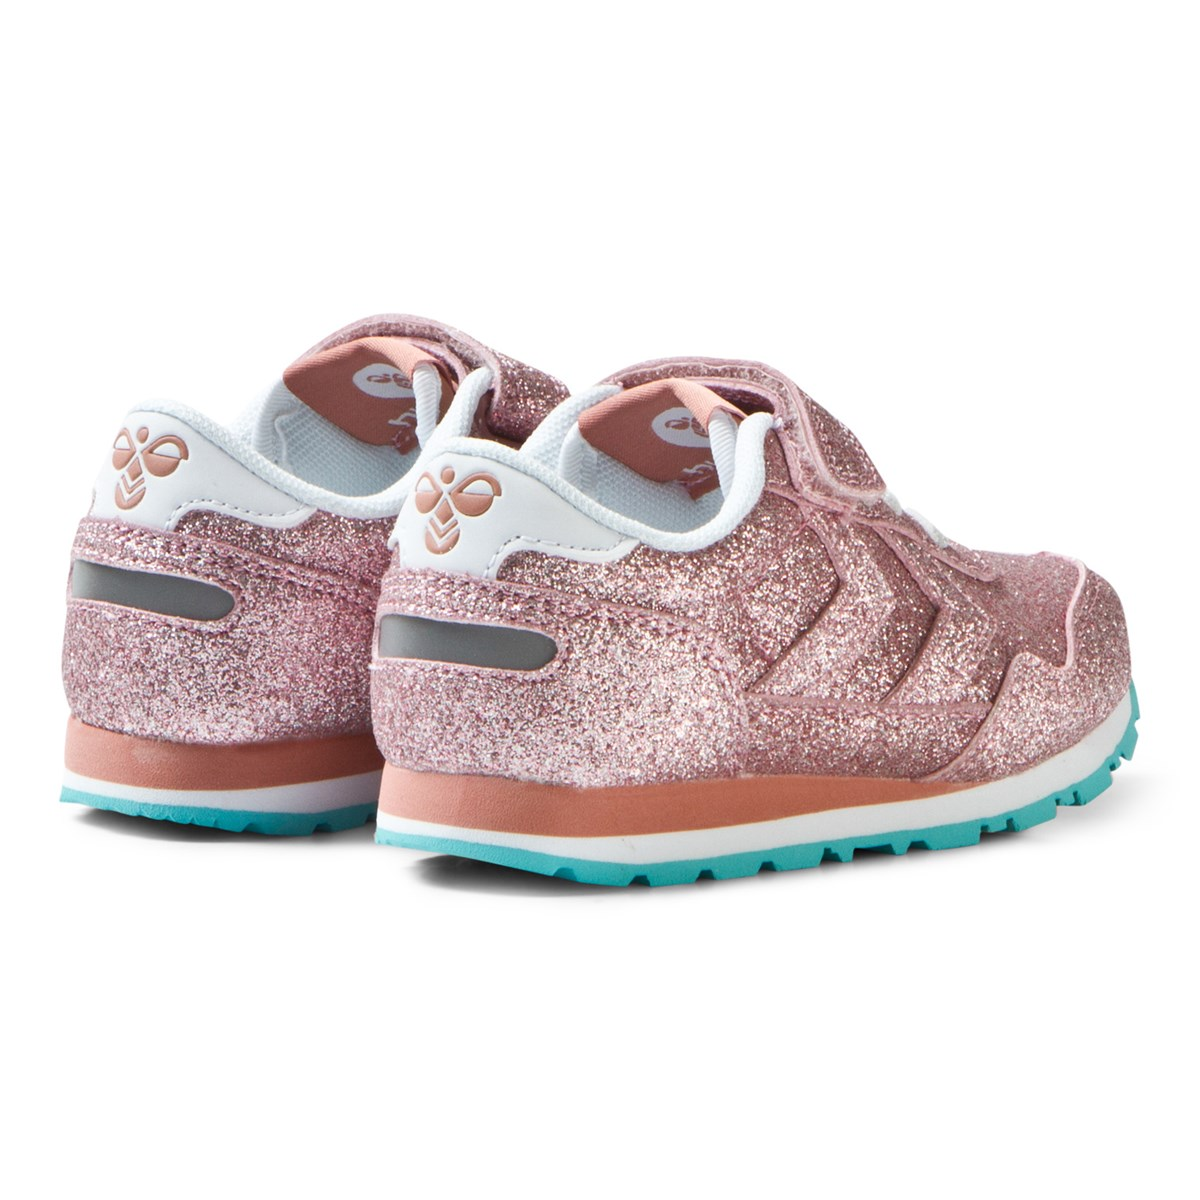 Hummel Reflex Princess Jr Rose Dawn Babyshop.dk